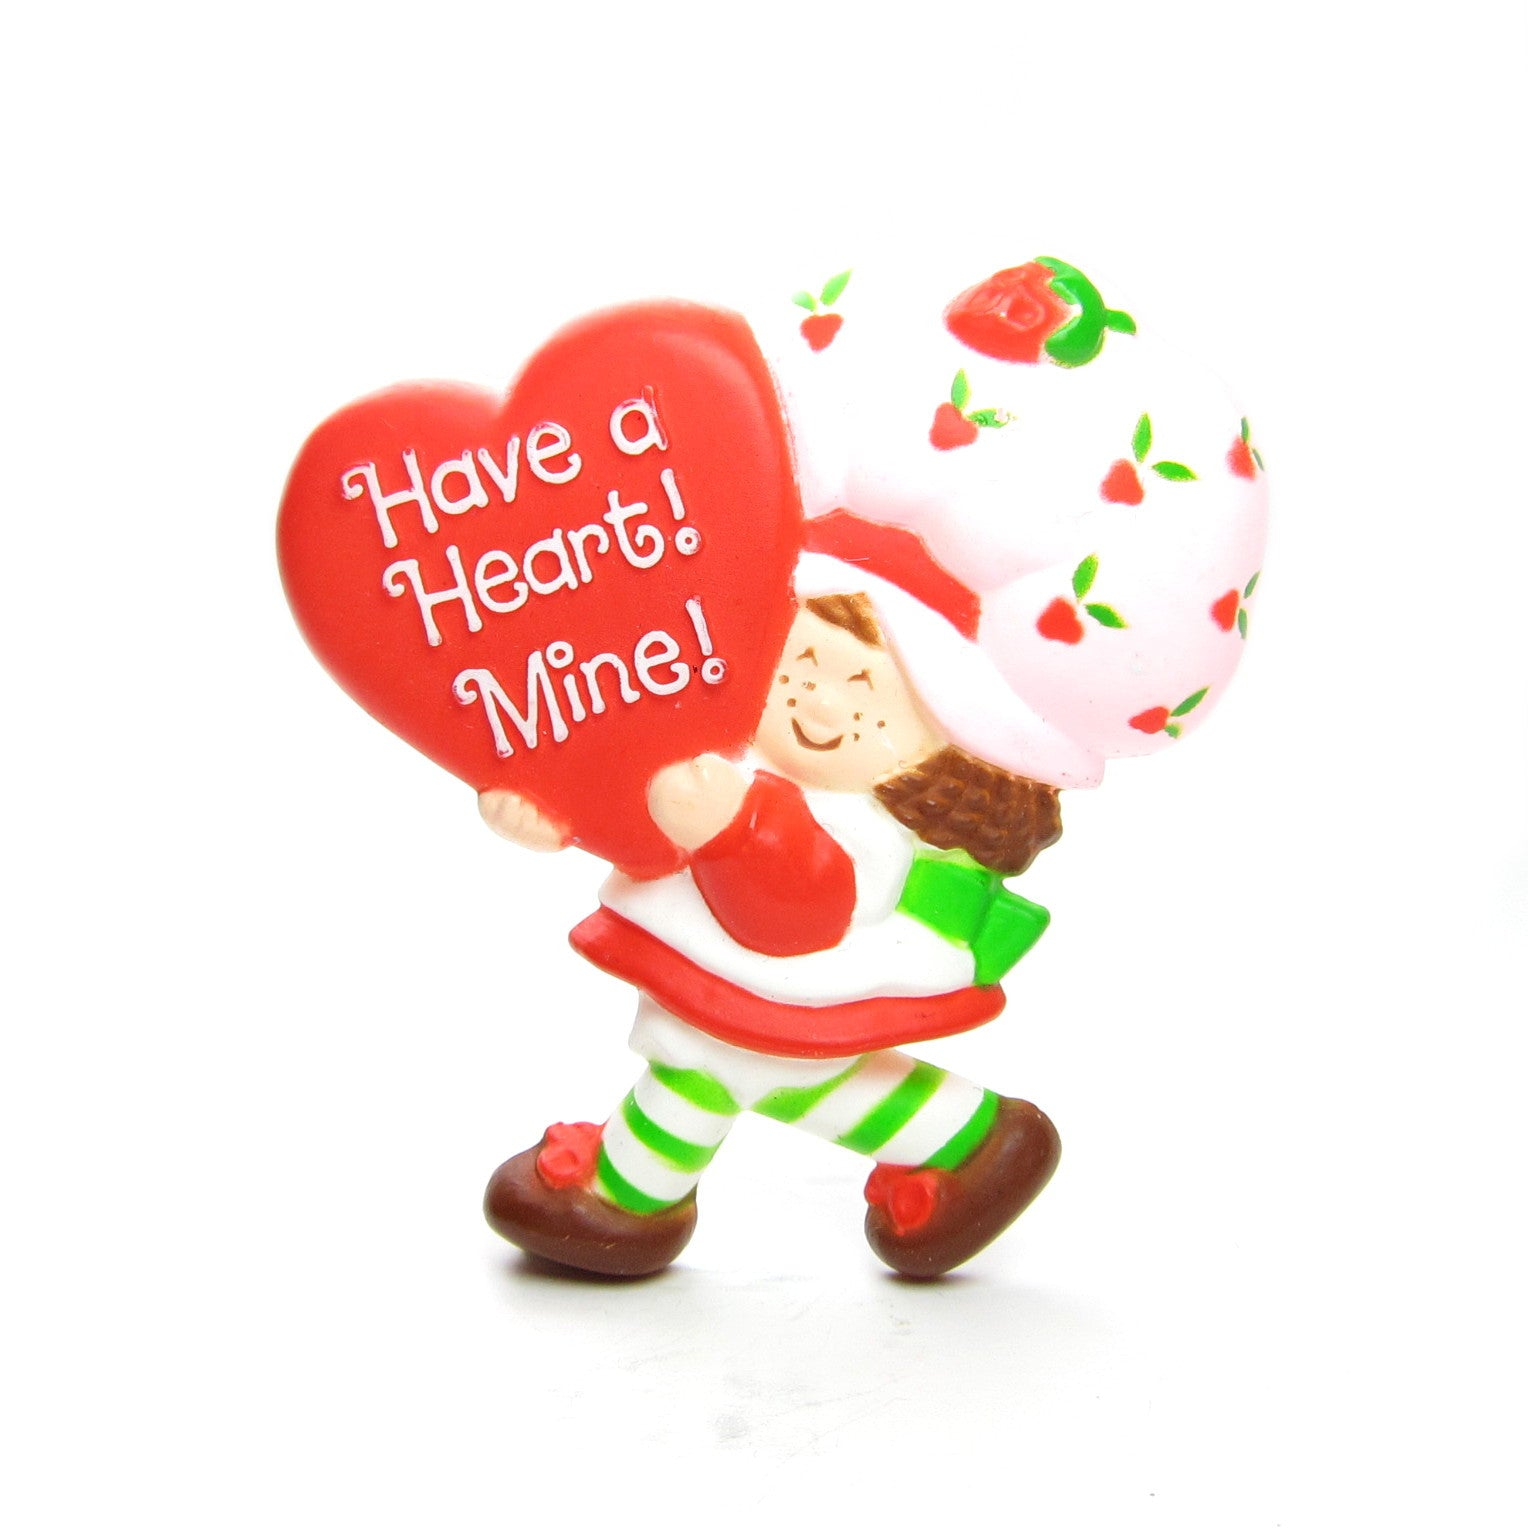 Strawberry Shortcake Valentine's Day Pin - Have a Heart! Mine!